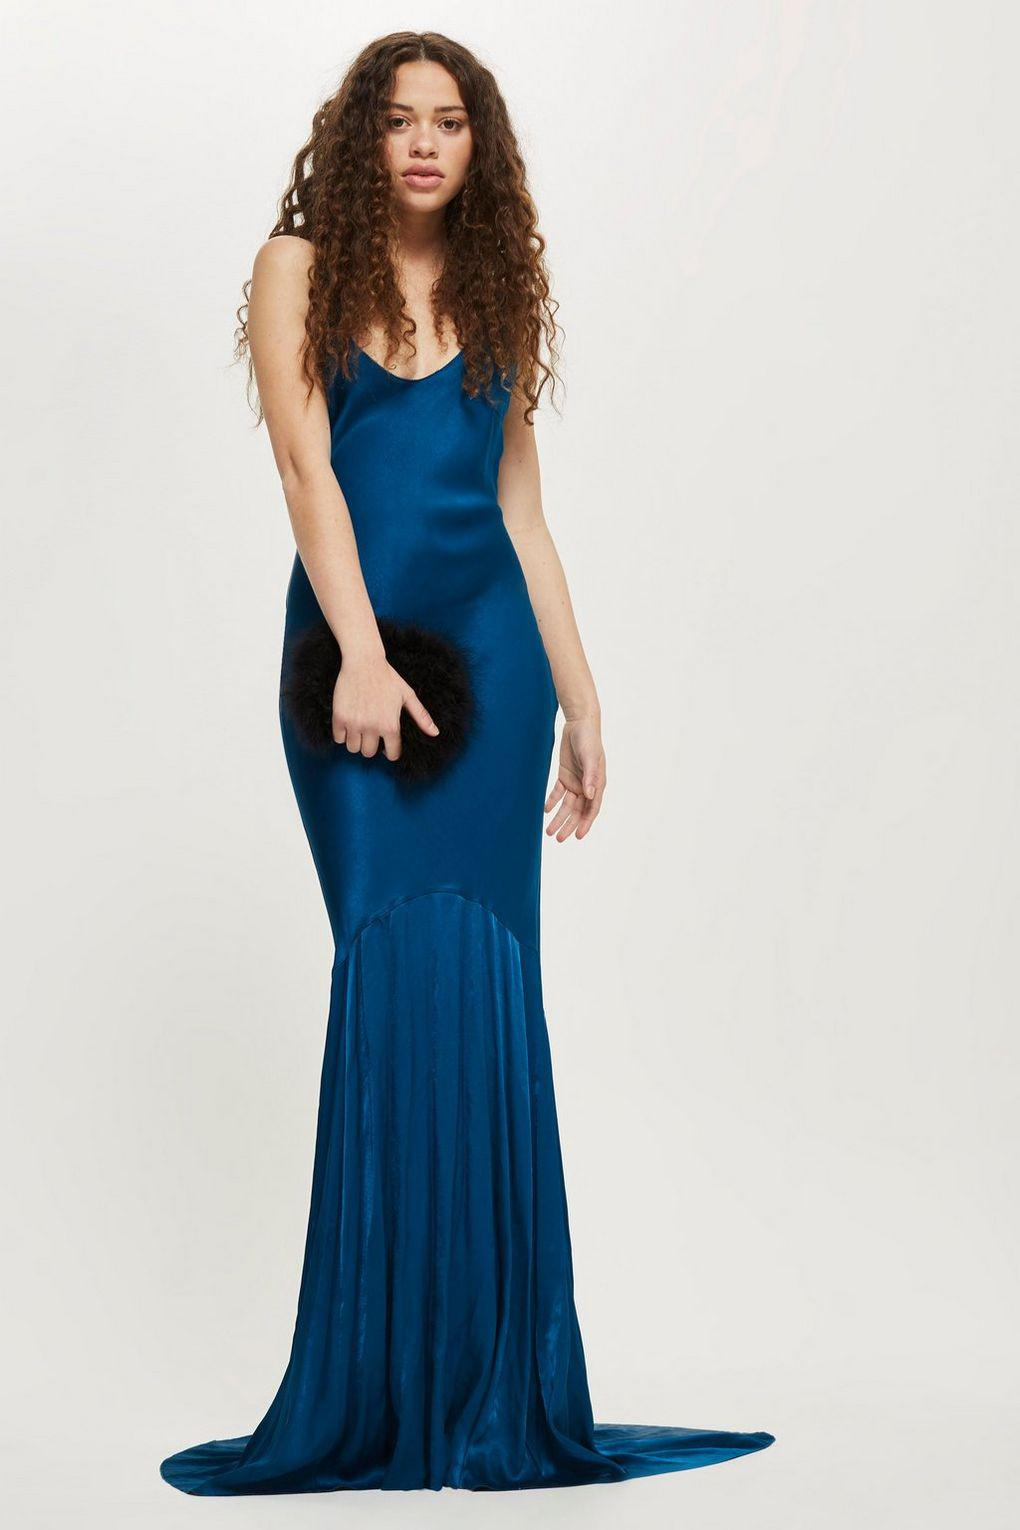 Lyst - Topshop Satin Fishtail Gown in Blue